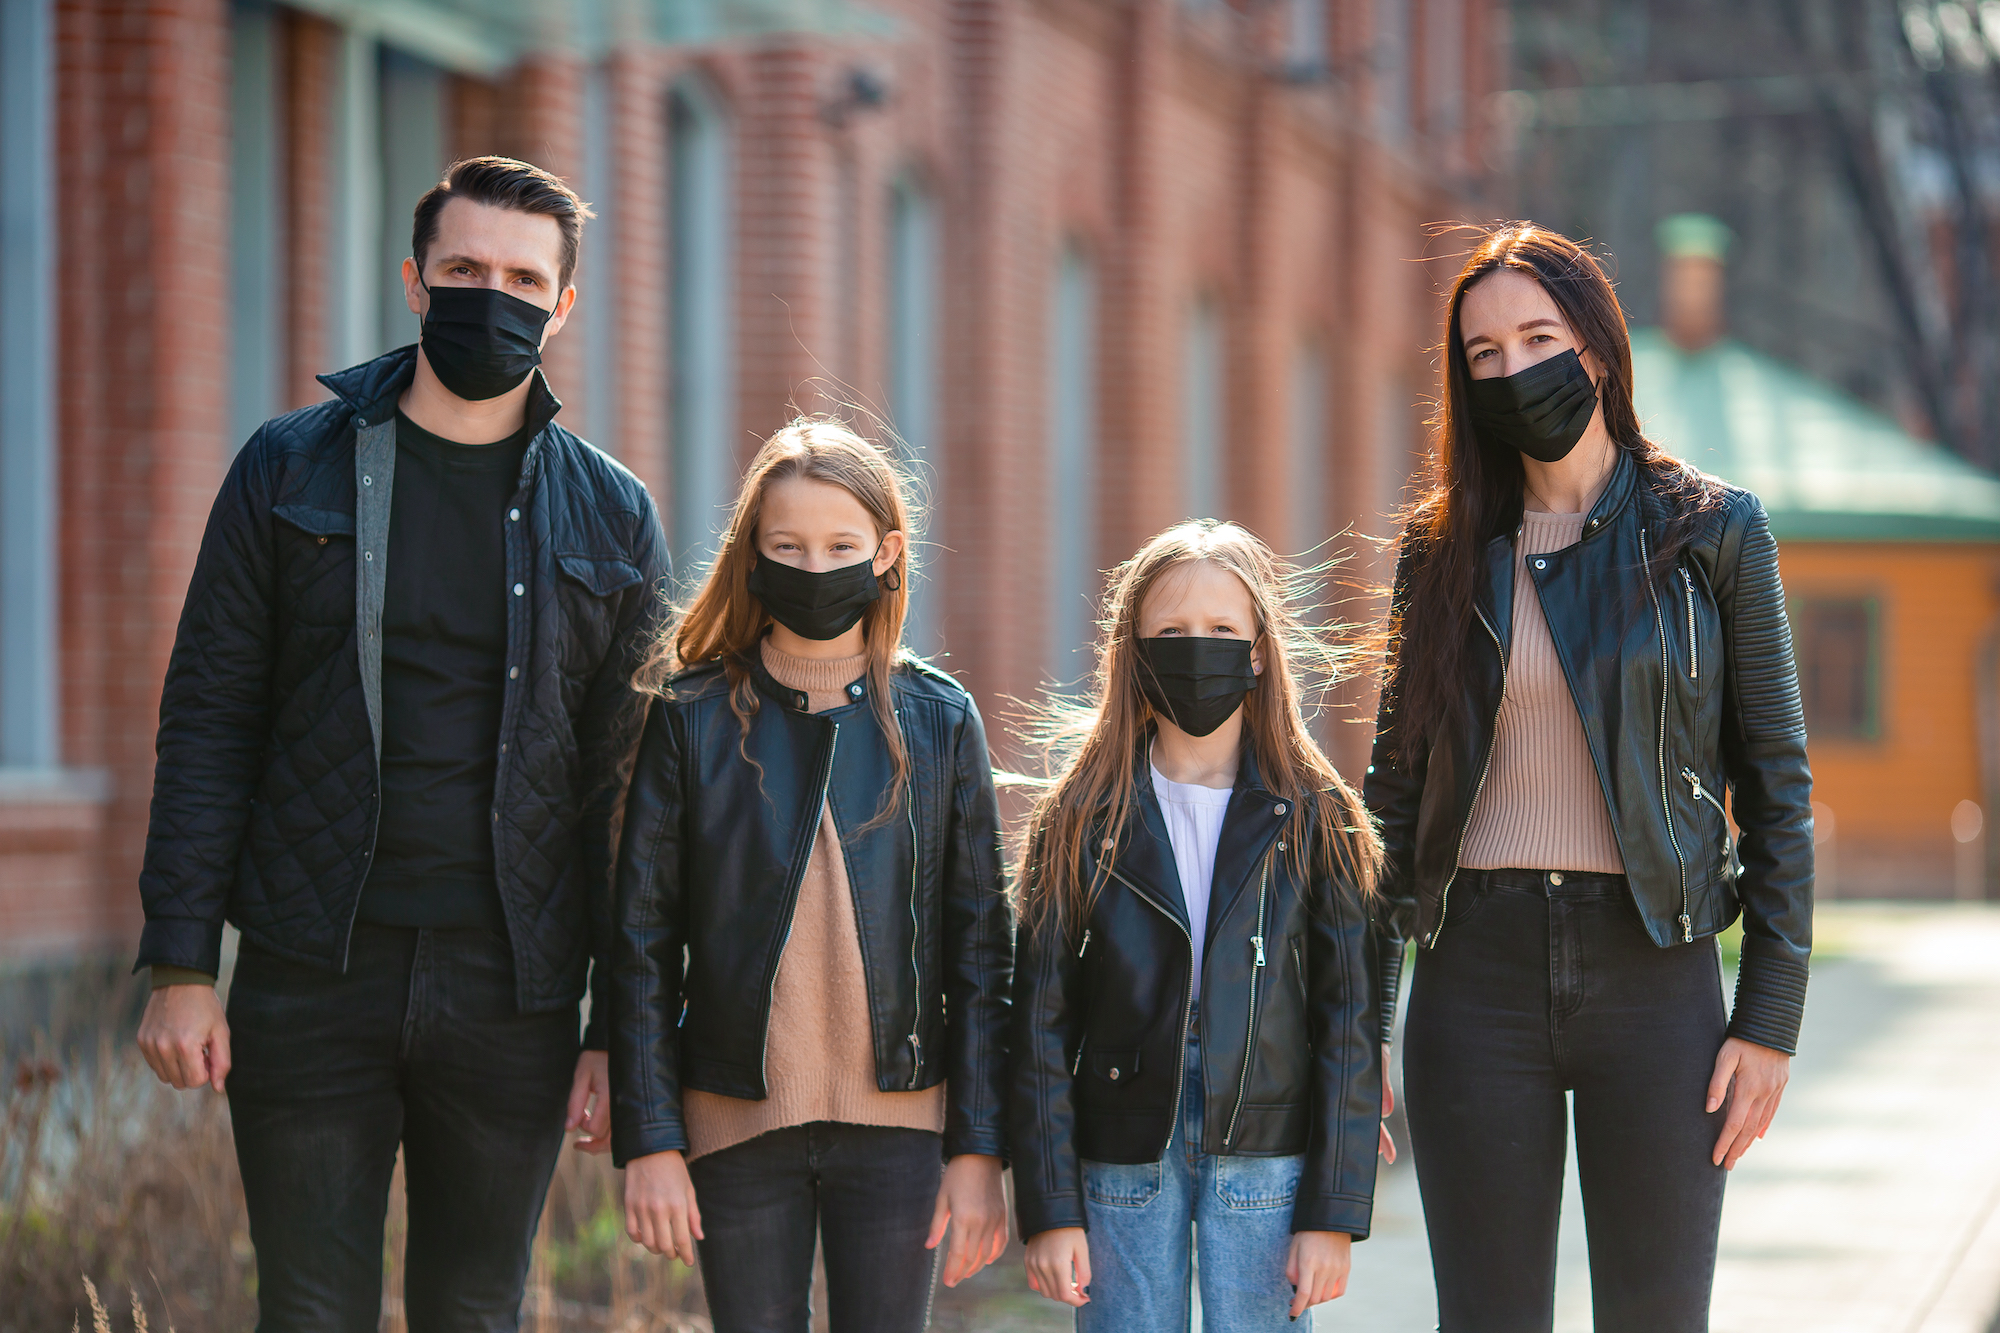 A family is seen wearing black masks to protect themselves against Coronavirus